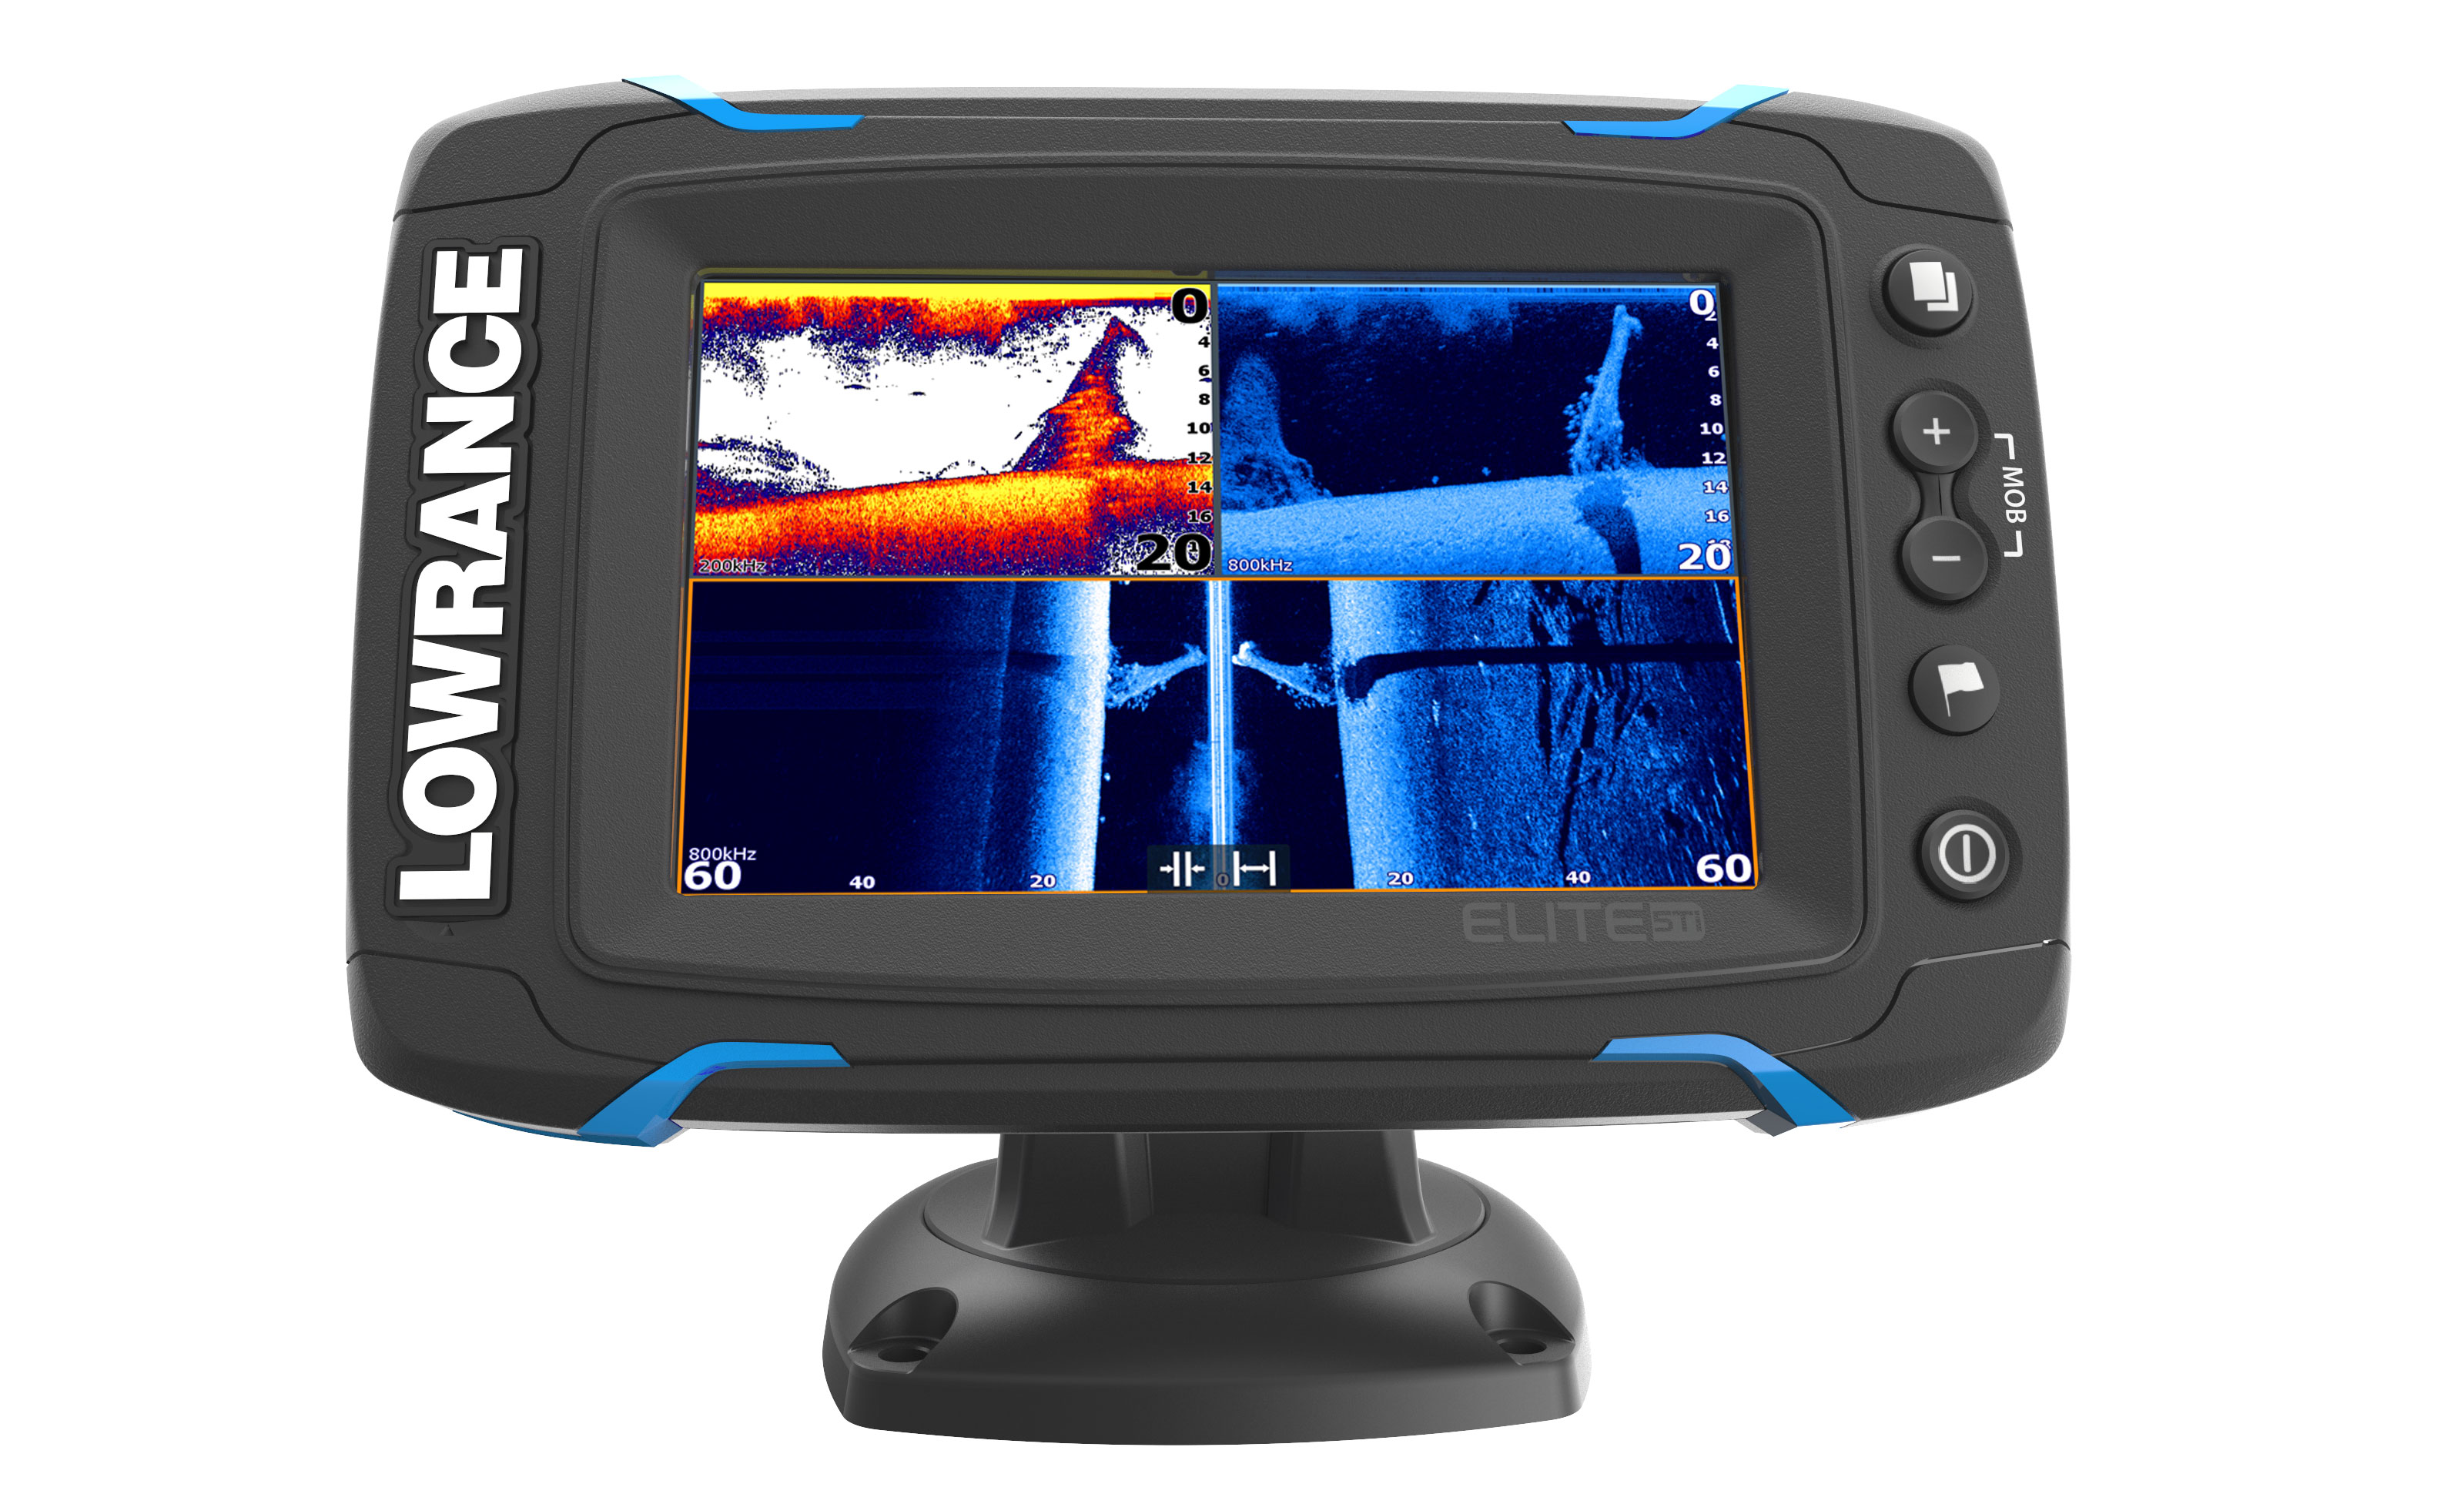 lowrance elite 5 ti gps fishfinder front view